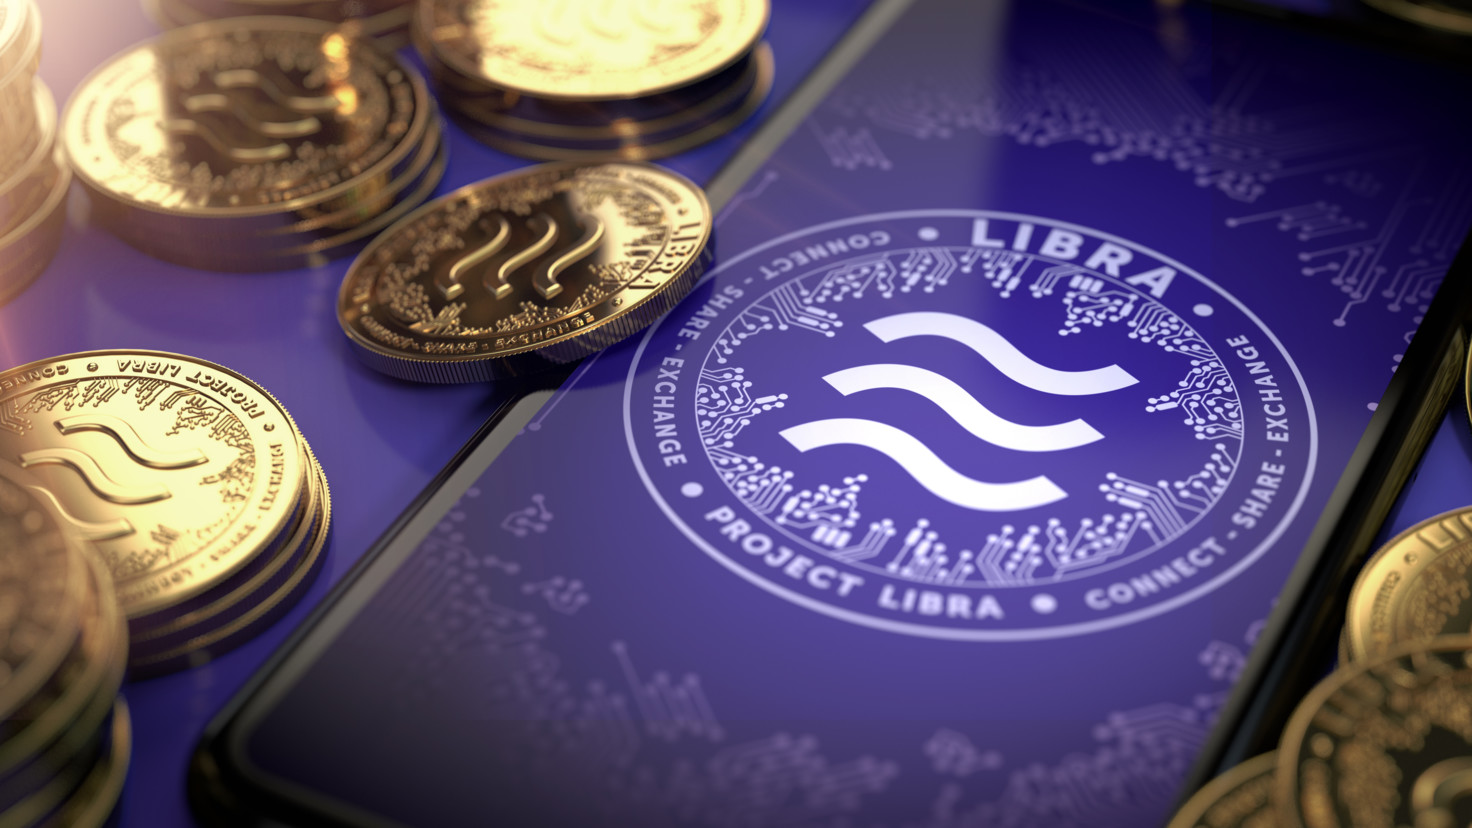 Facebook Libra Association forms board at first meeting